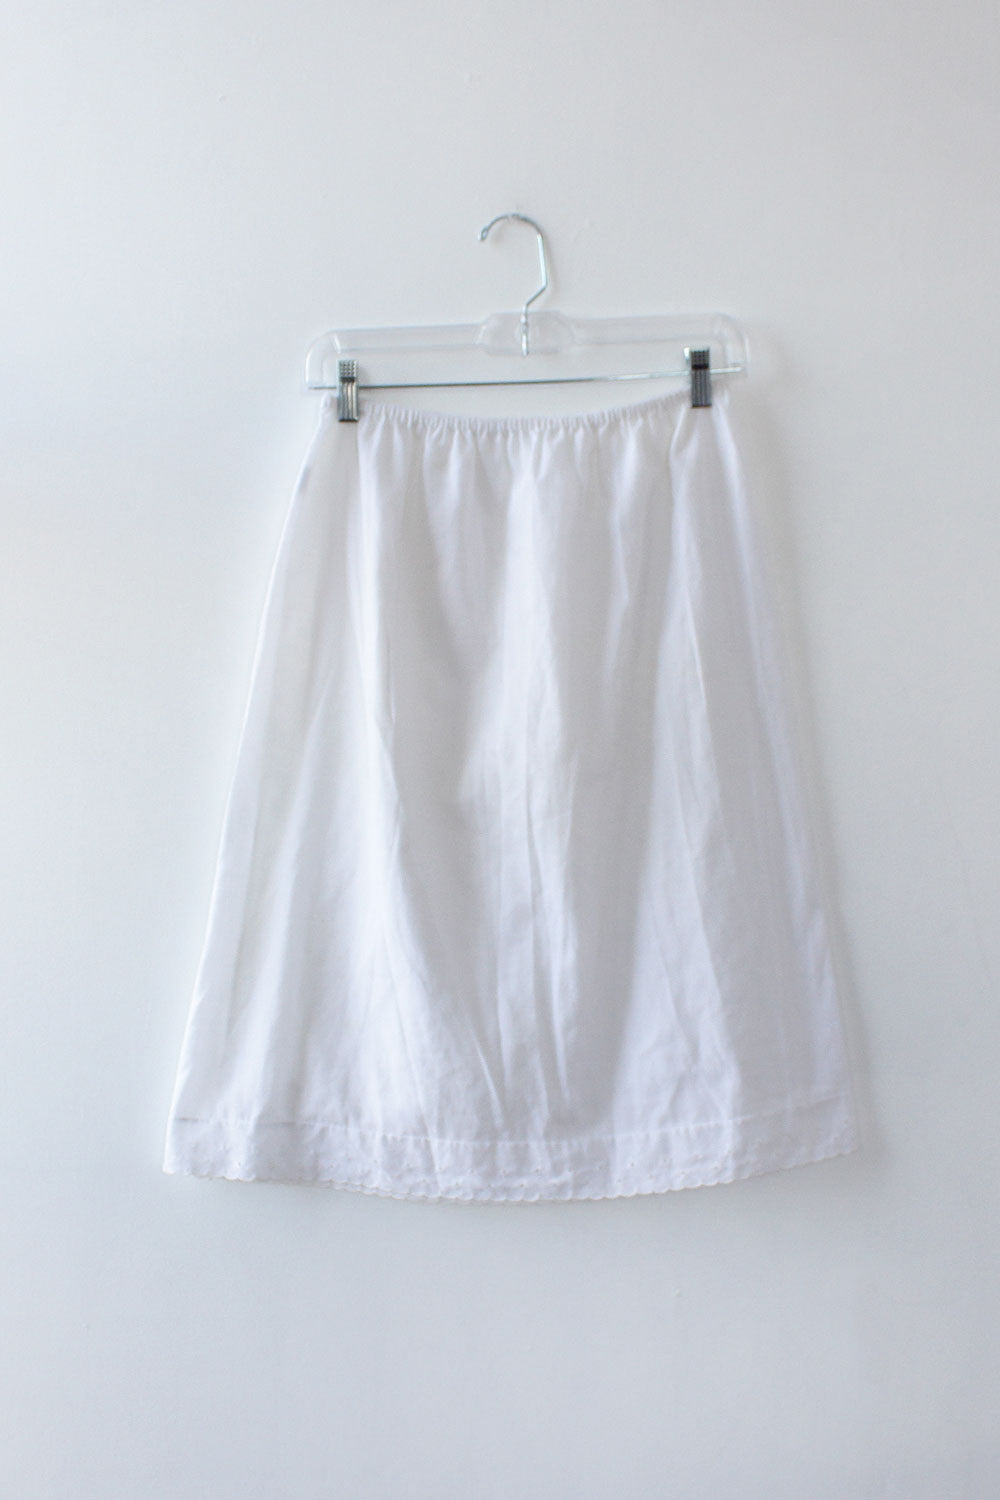 Eyelet Trim Slip Skirt M